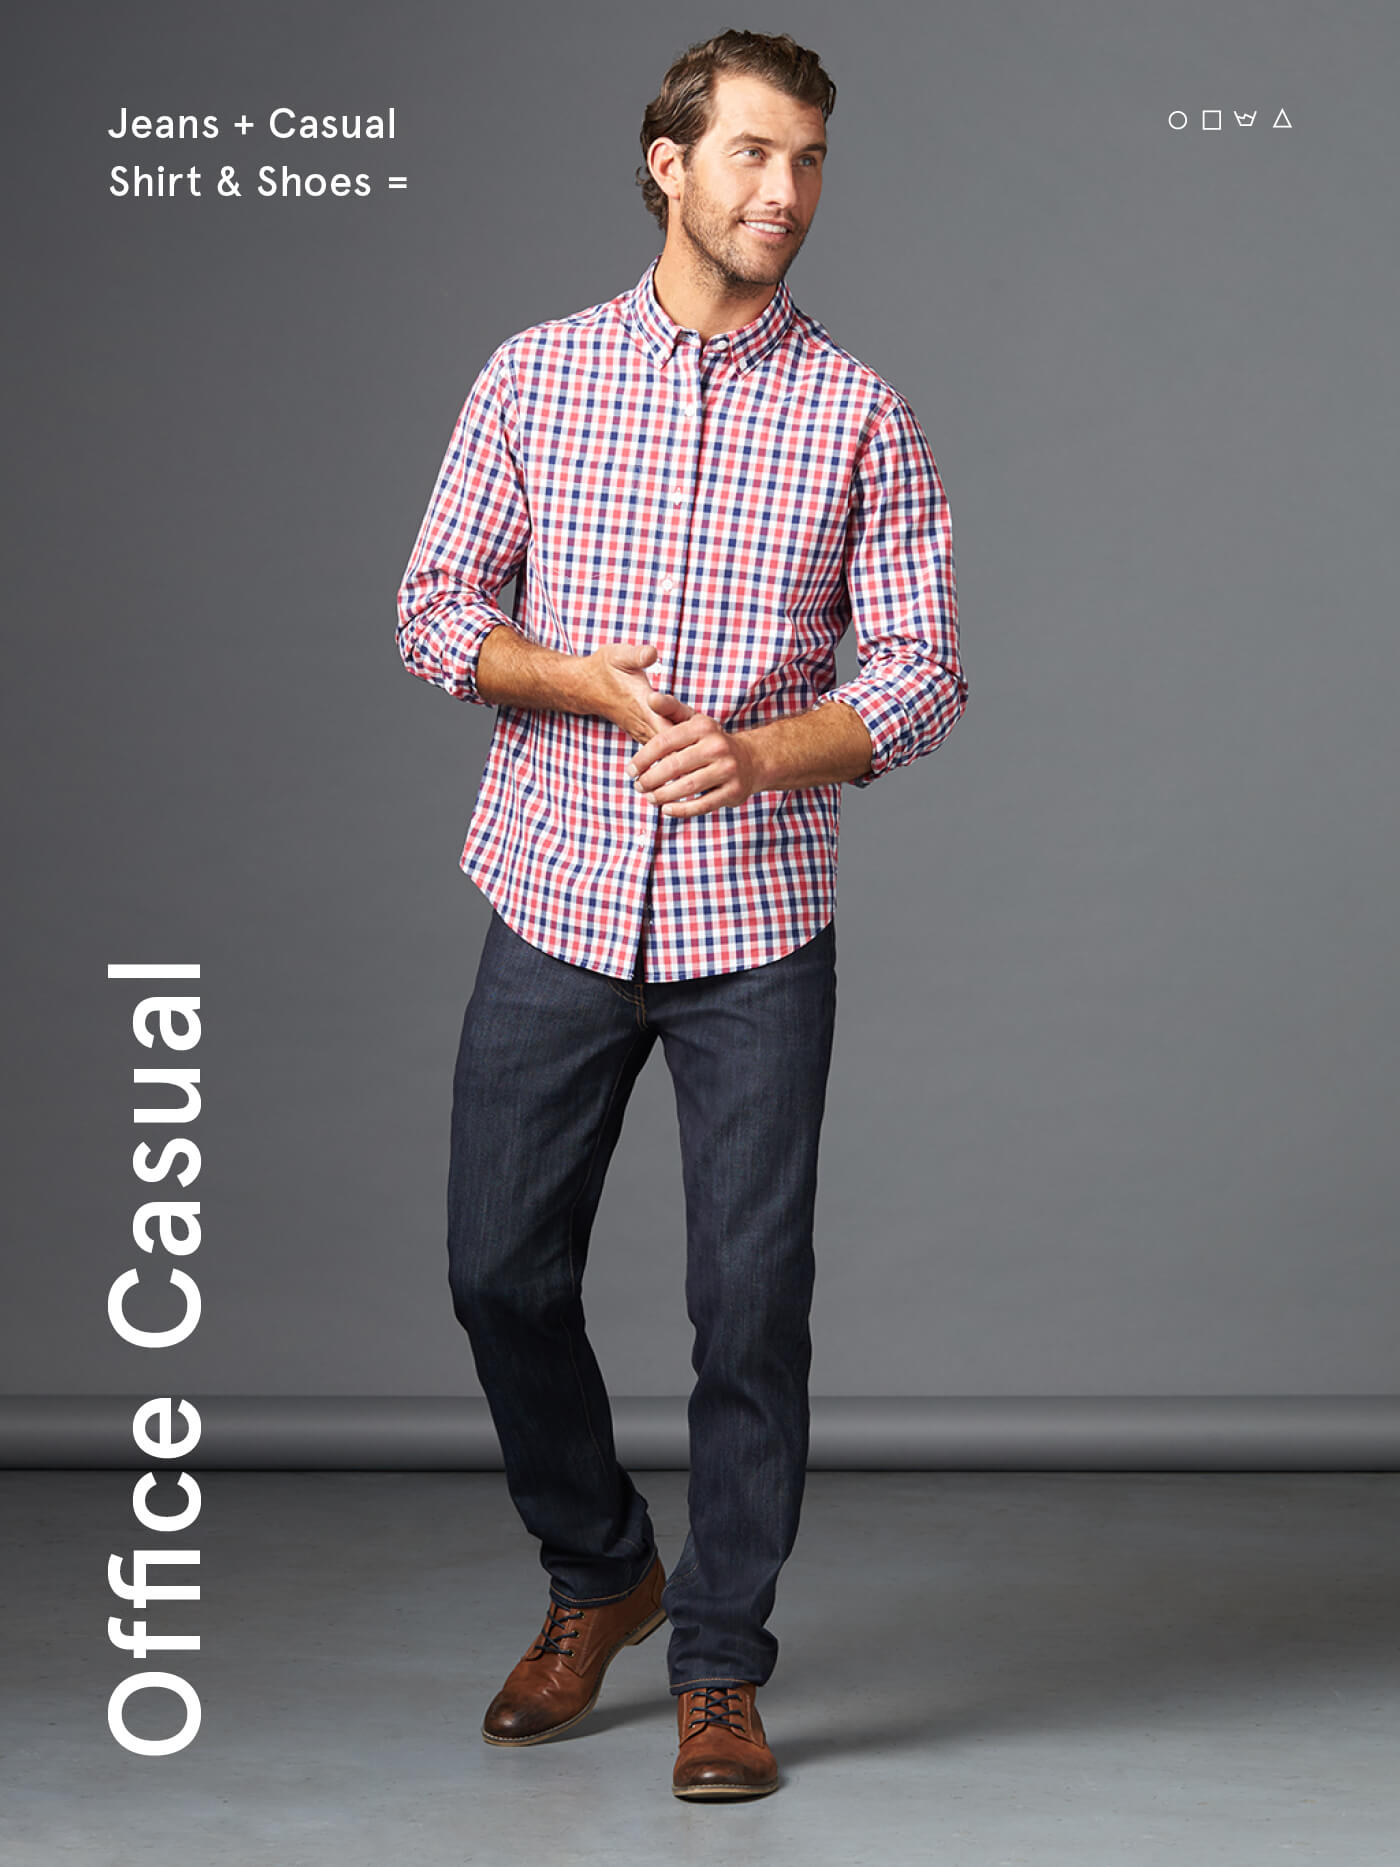 what is office casual? jeans with a casual button down shirt and dress shoes